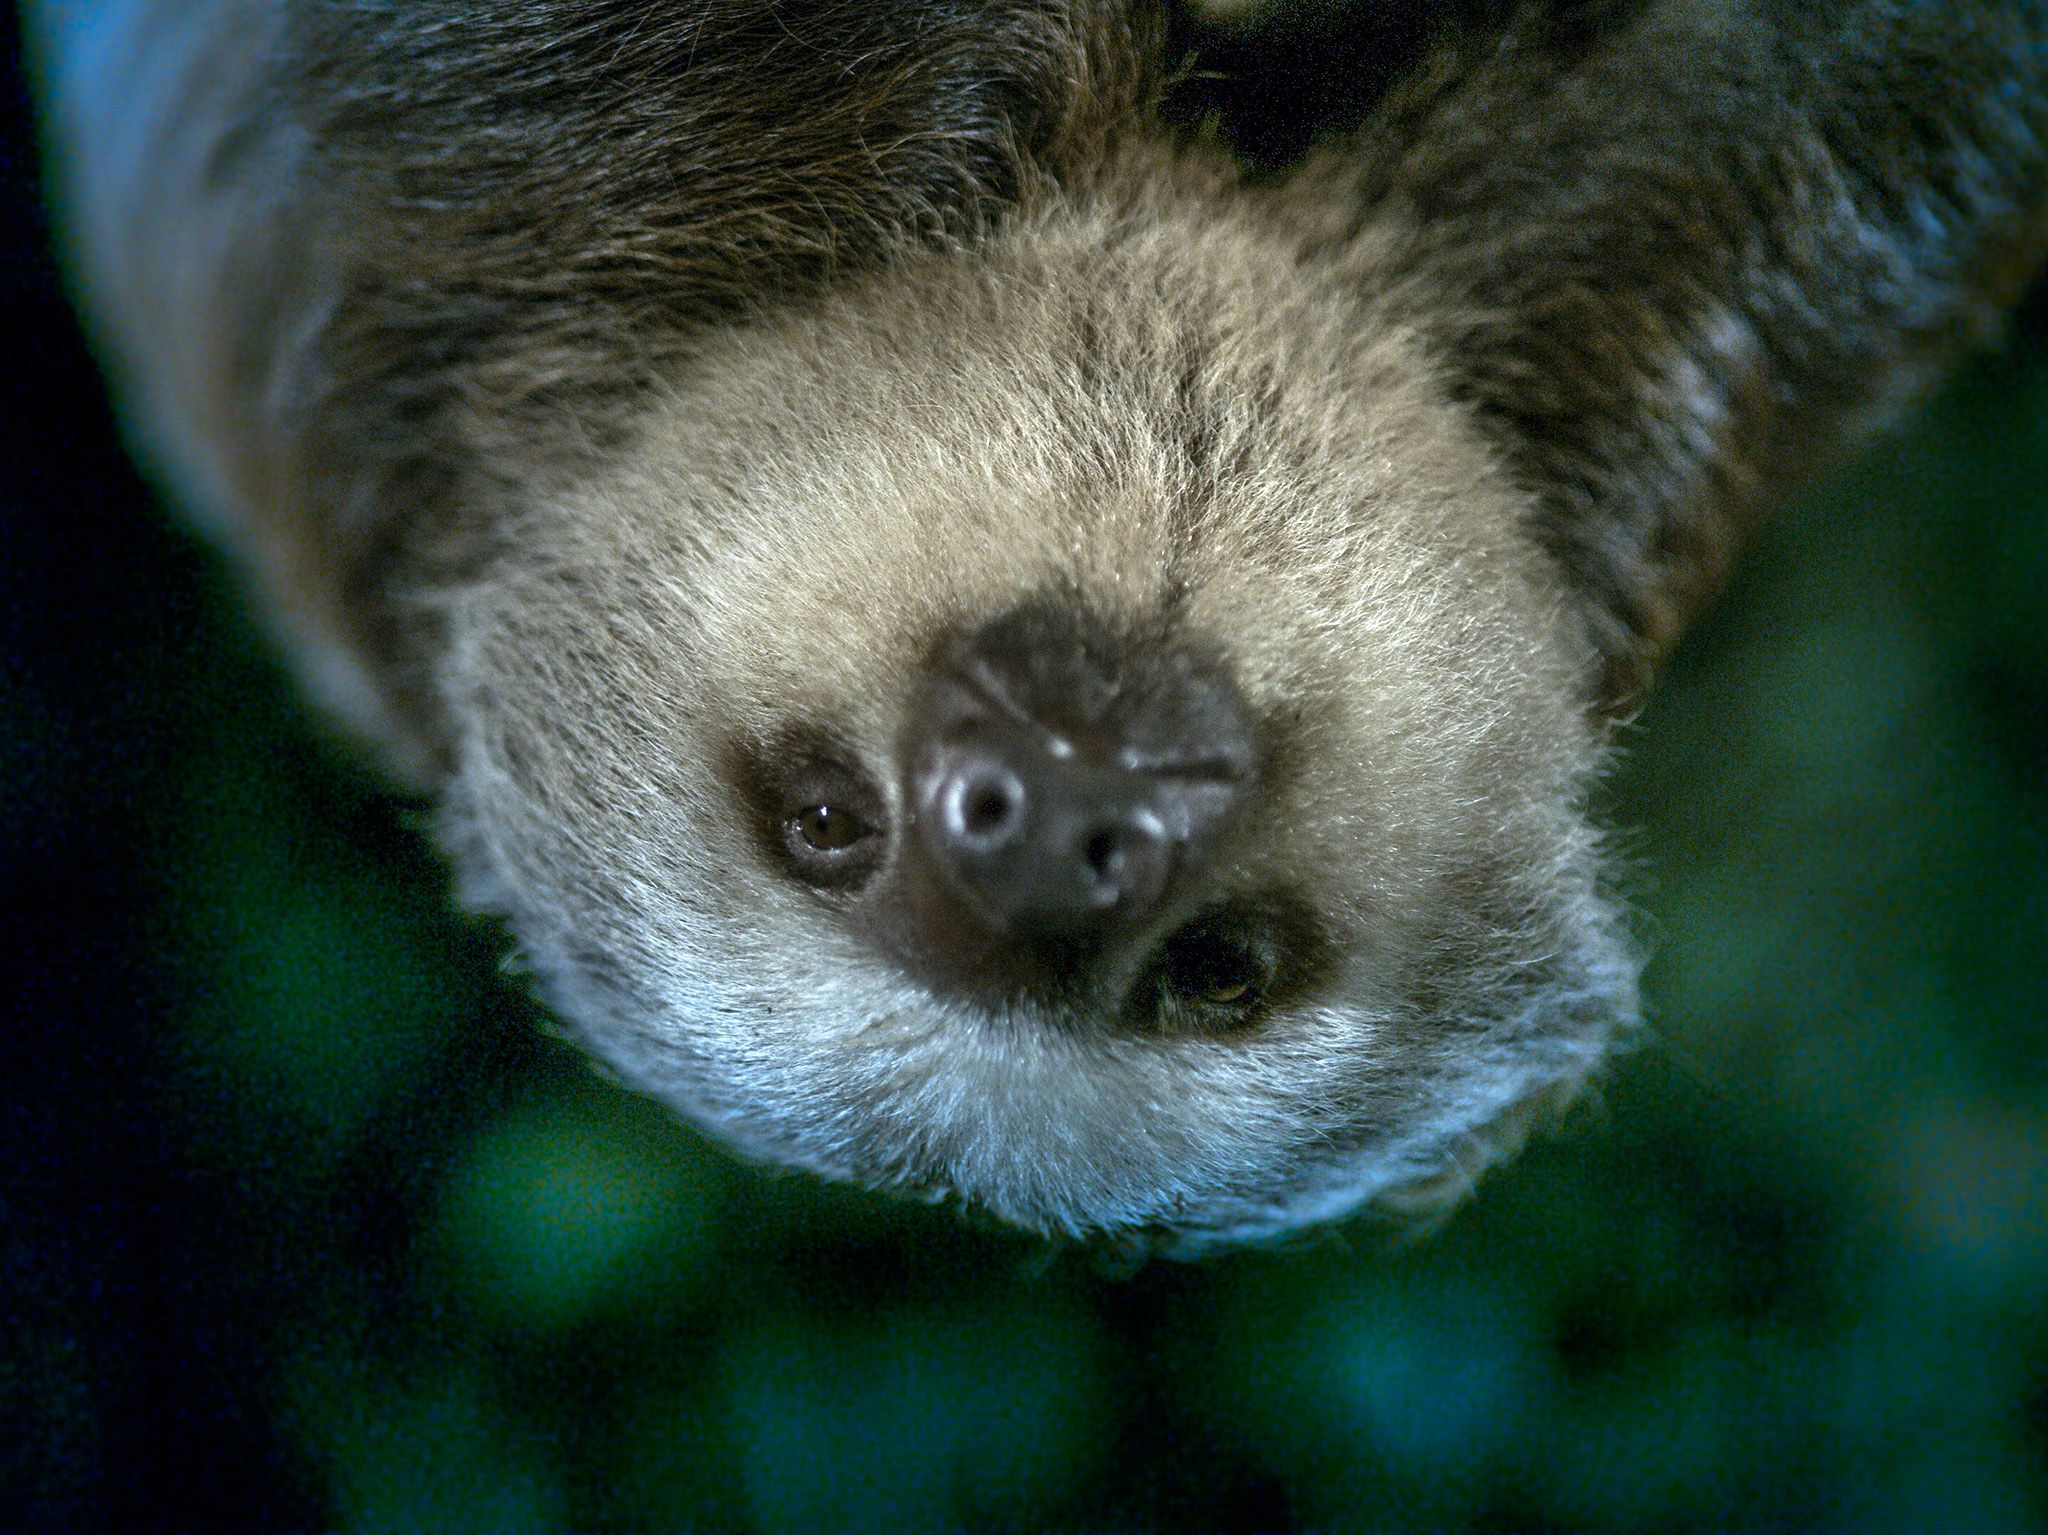 Costa Rica:  A sloth in a tree.  This image is from Dead by Dawn. [Foto del giorno - March 2019]